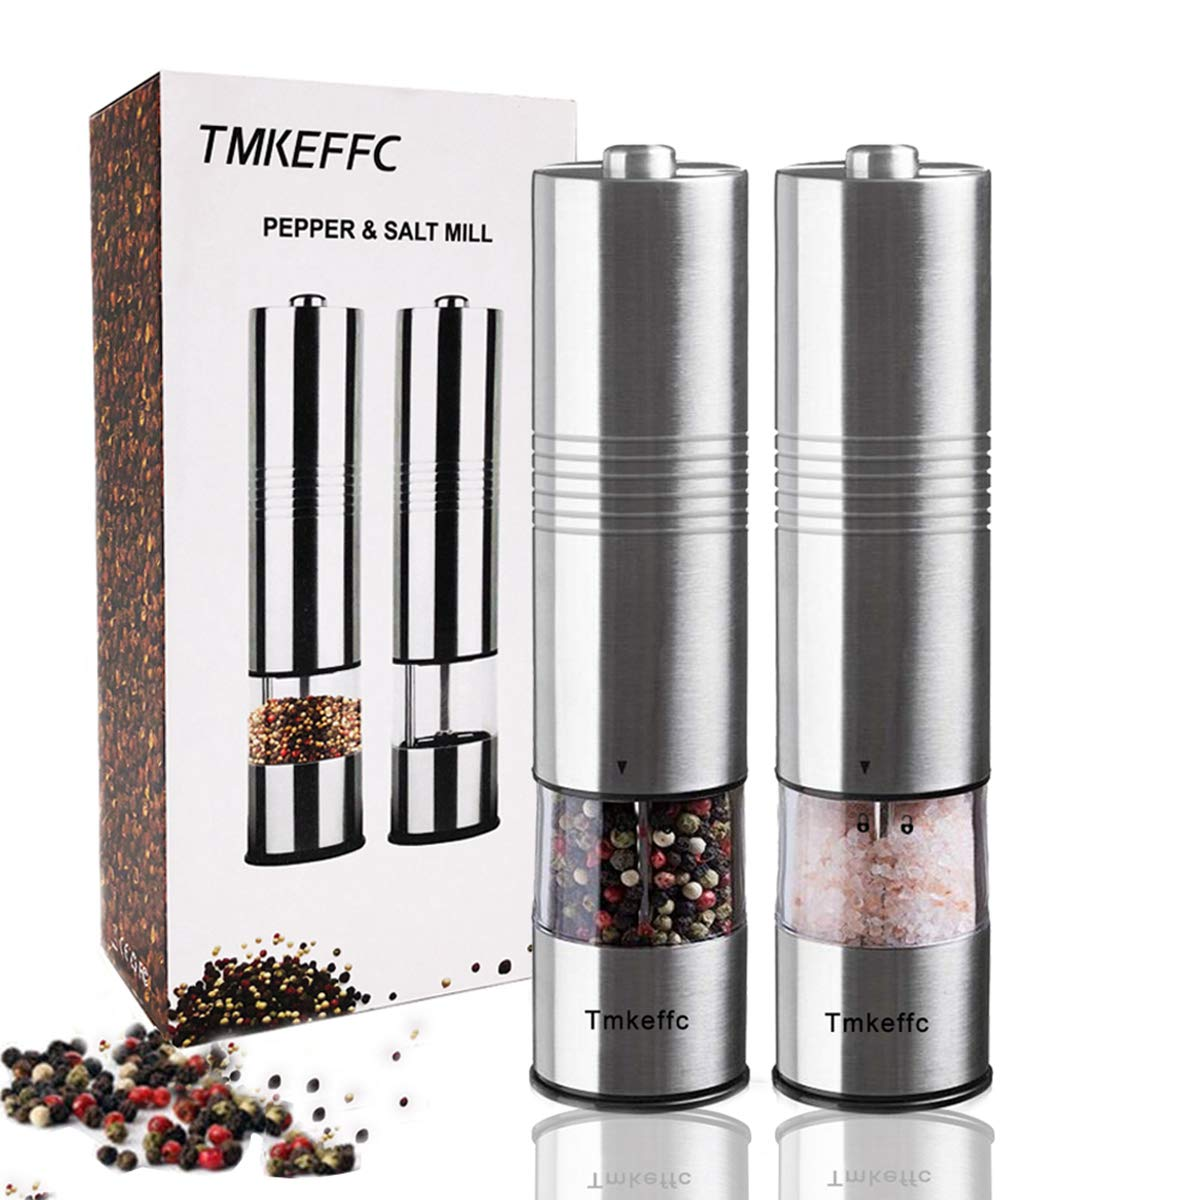 TMKEFFC Electric Salt Pepper Grinder Set of 2, Spices Seasoning Stainless Steel Mill Battery Operated Shaker Adjustable Coarseness, Ceramic Rotors LED Light, Transparent Container